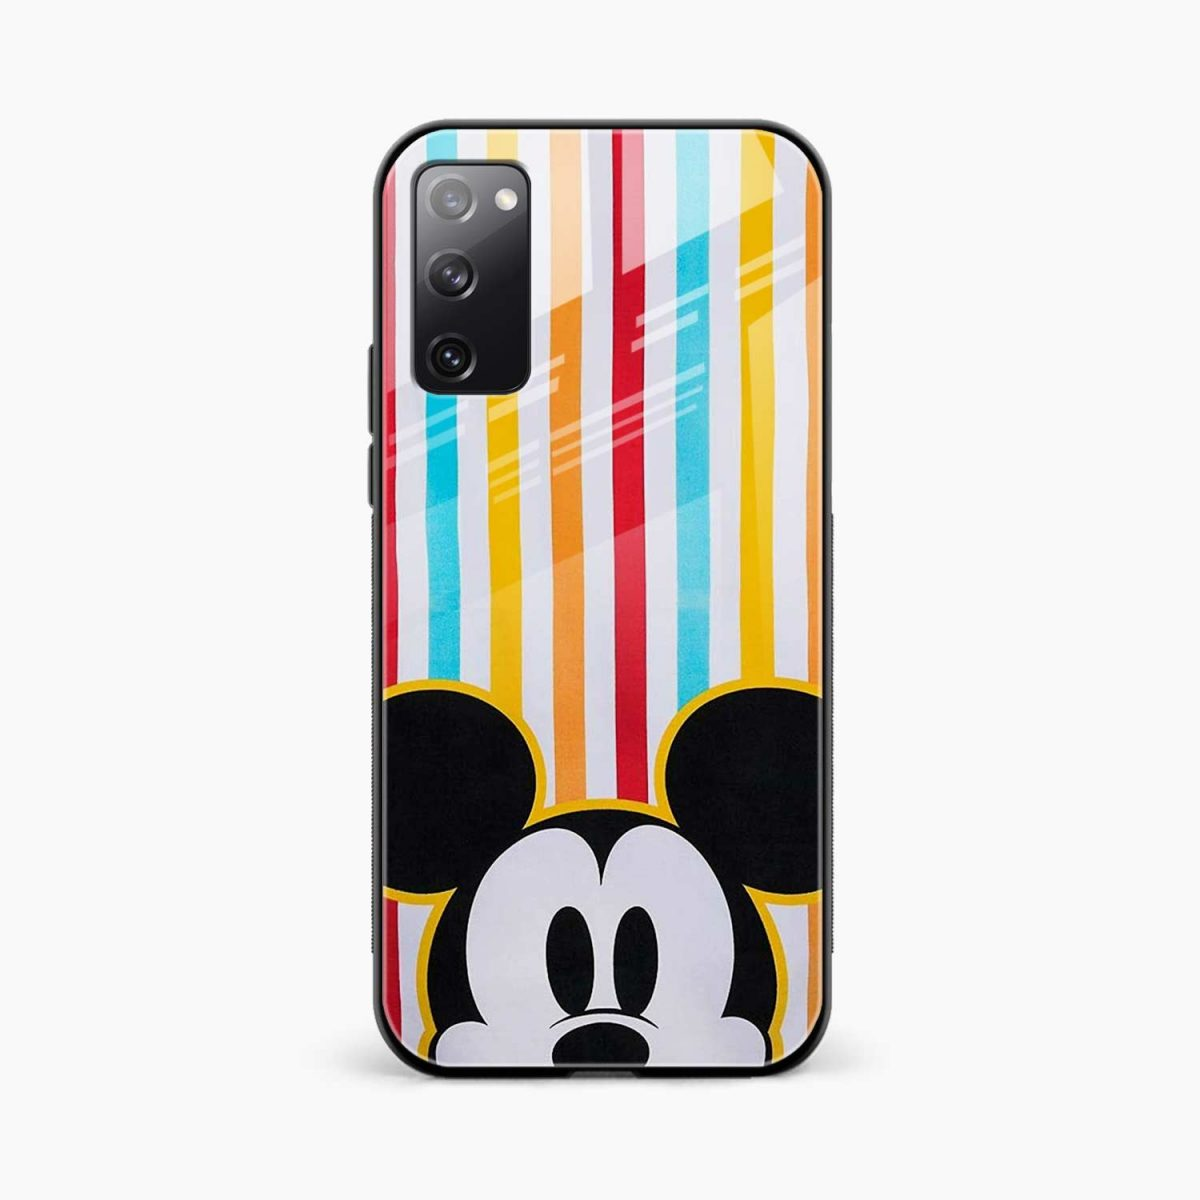 rigid spy mickey mouse front view samsung galaxy s20 fe back cover